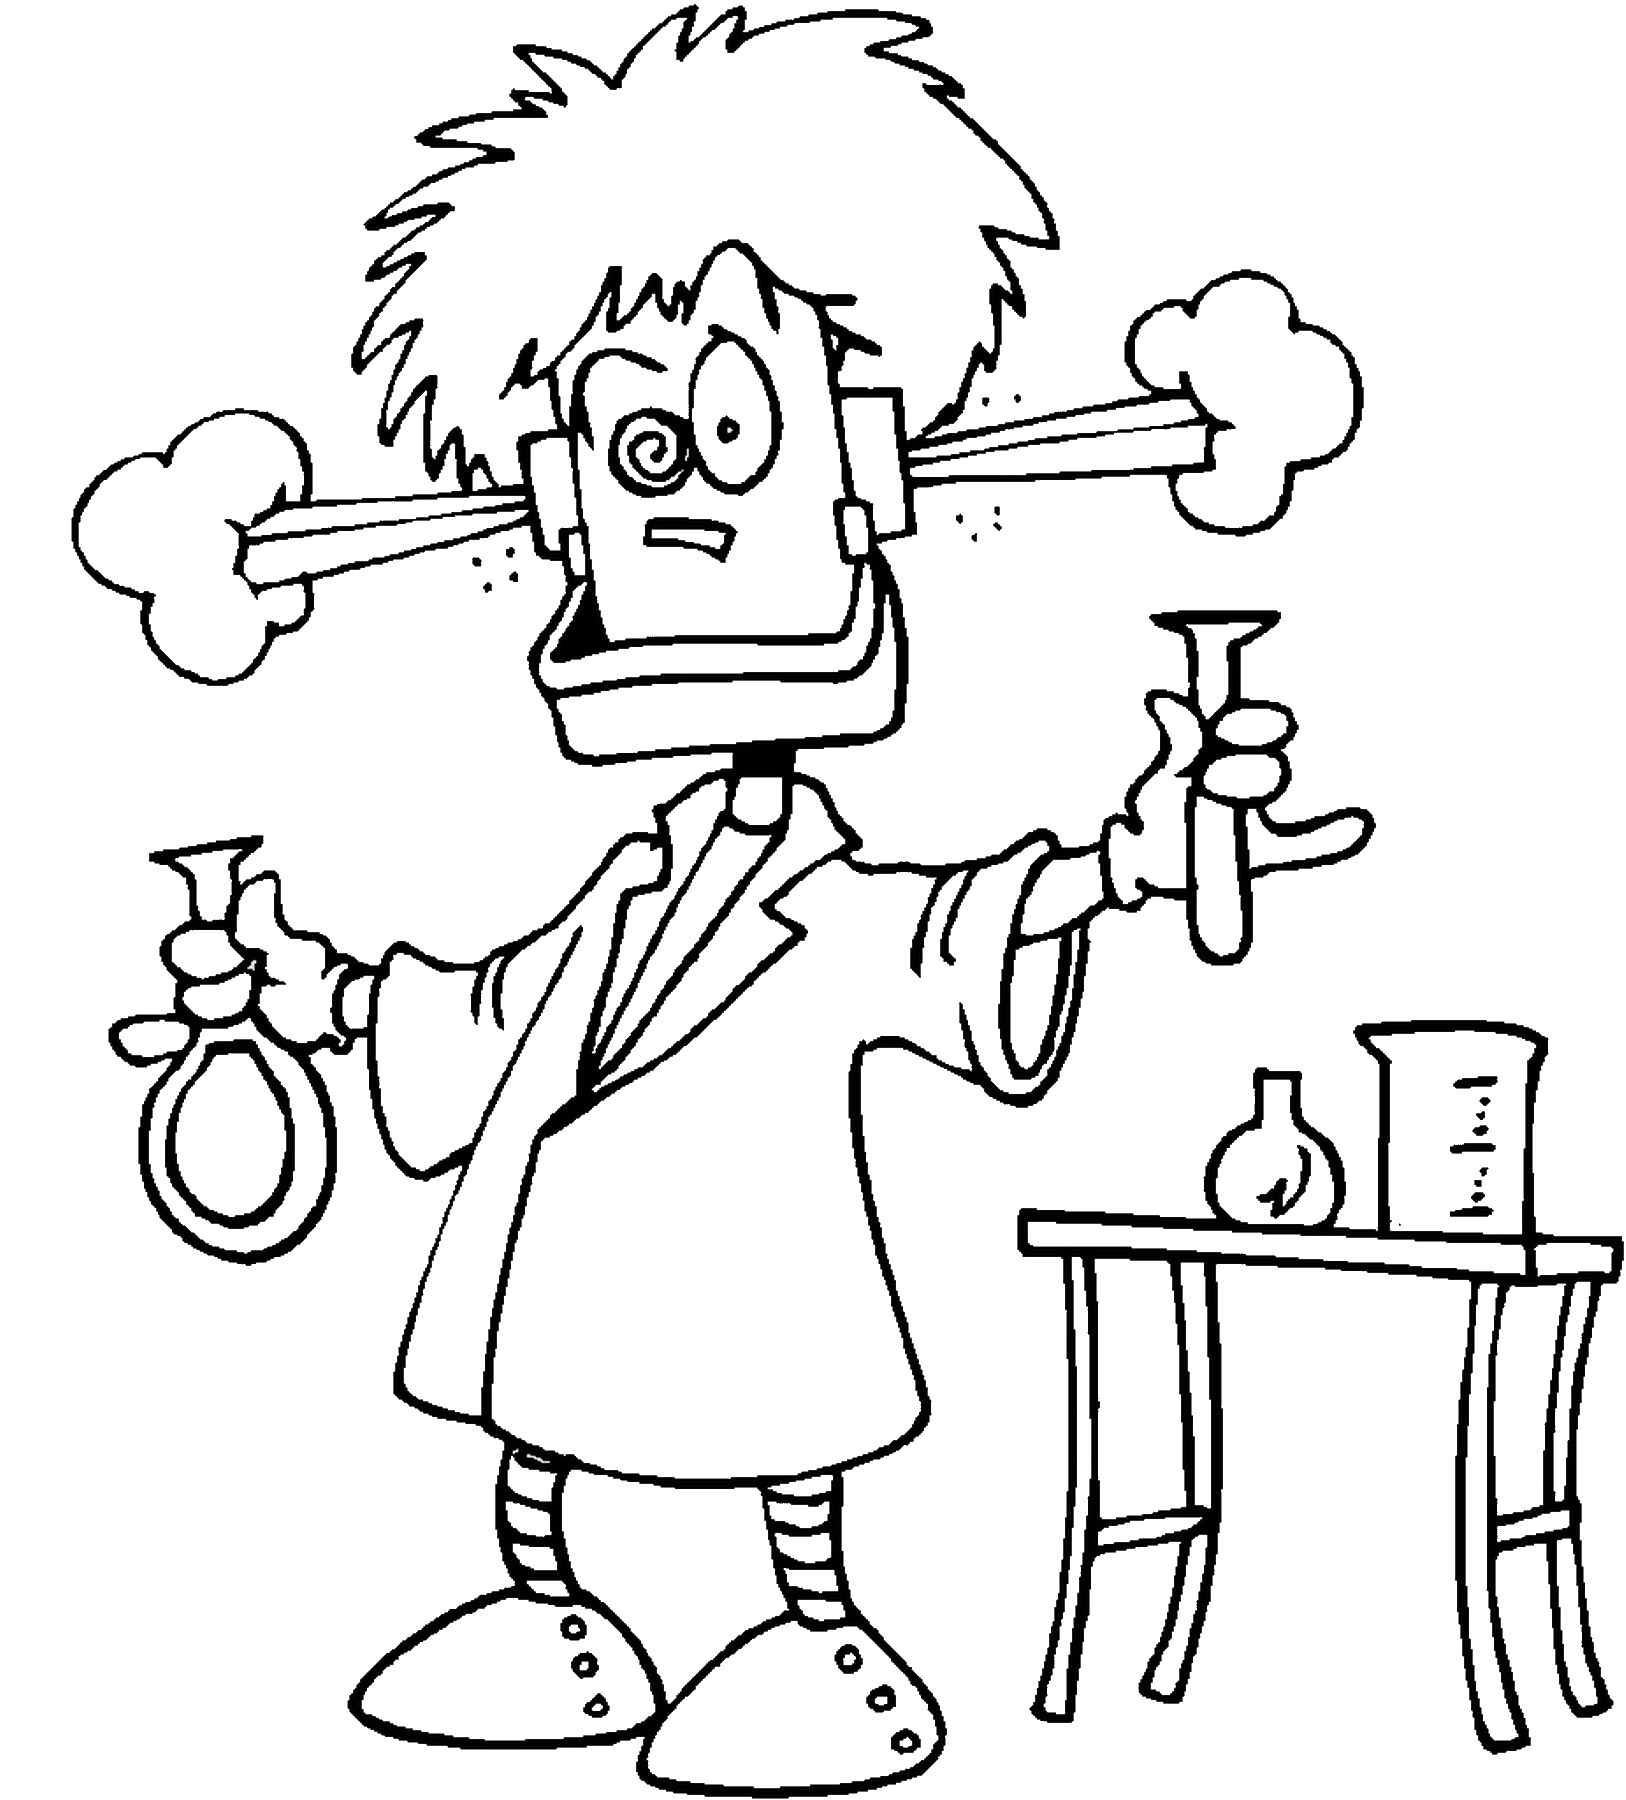 science coloring sheet science coloring pages science coloring sheet